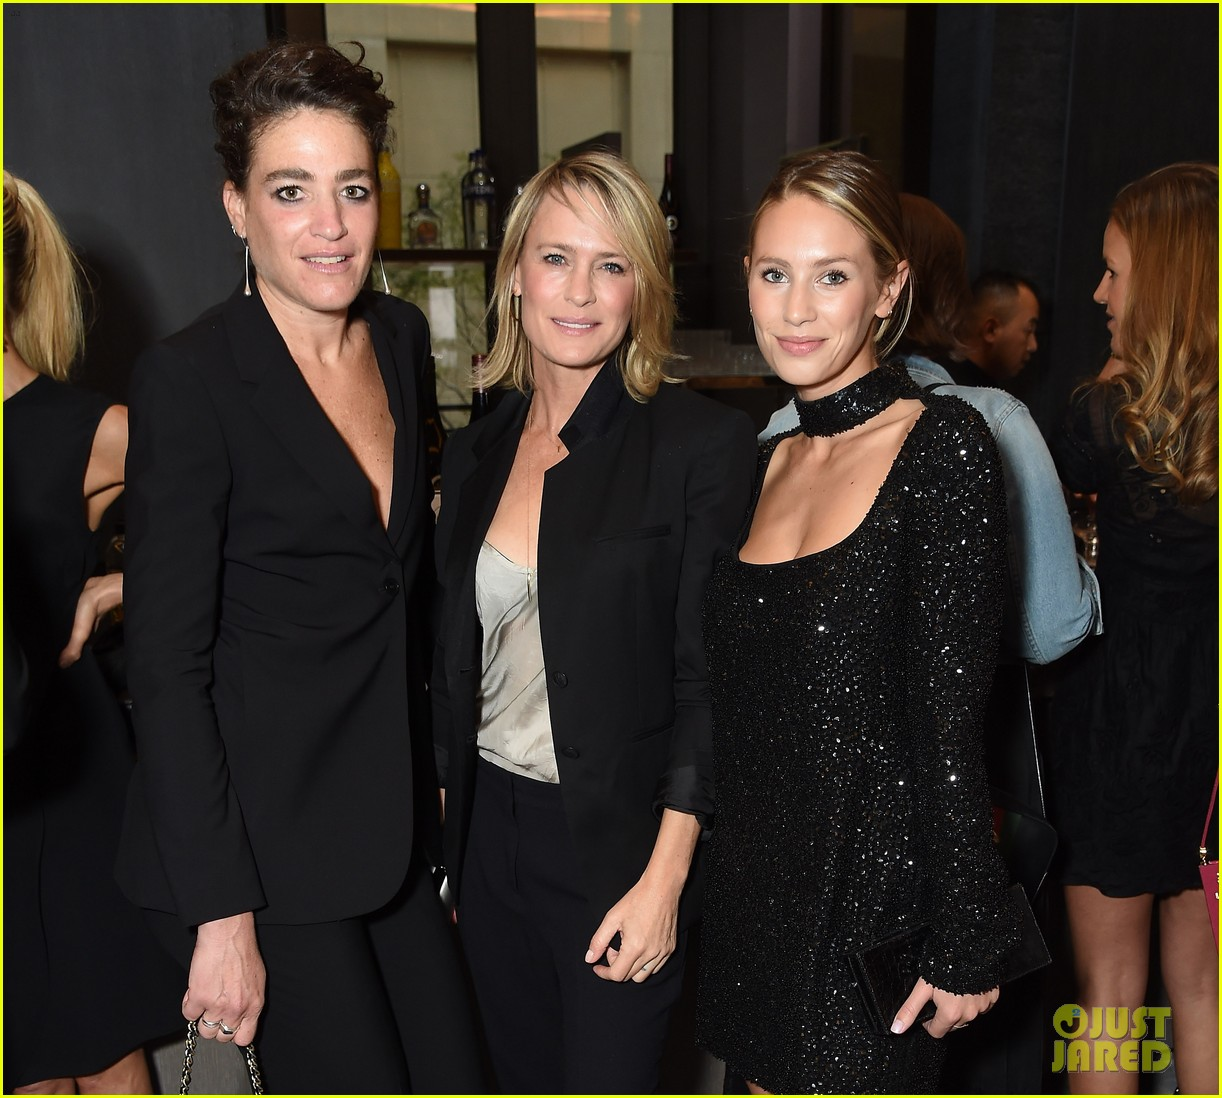 Jessica Canseco Fappening,Lindsay Lohan Caught Stealing In Court XXX pics & movies Giedre dukauskaite tits,Sharon stone endangered bonos life